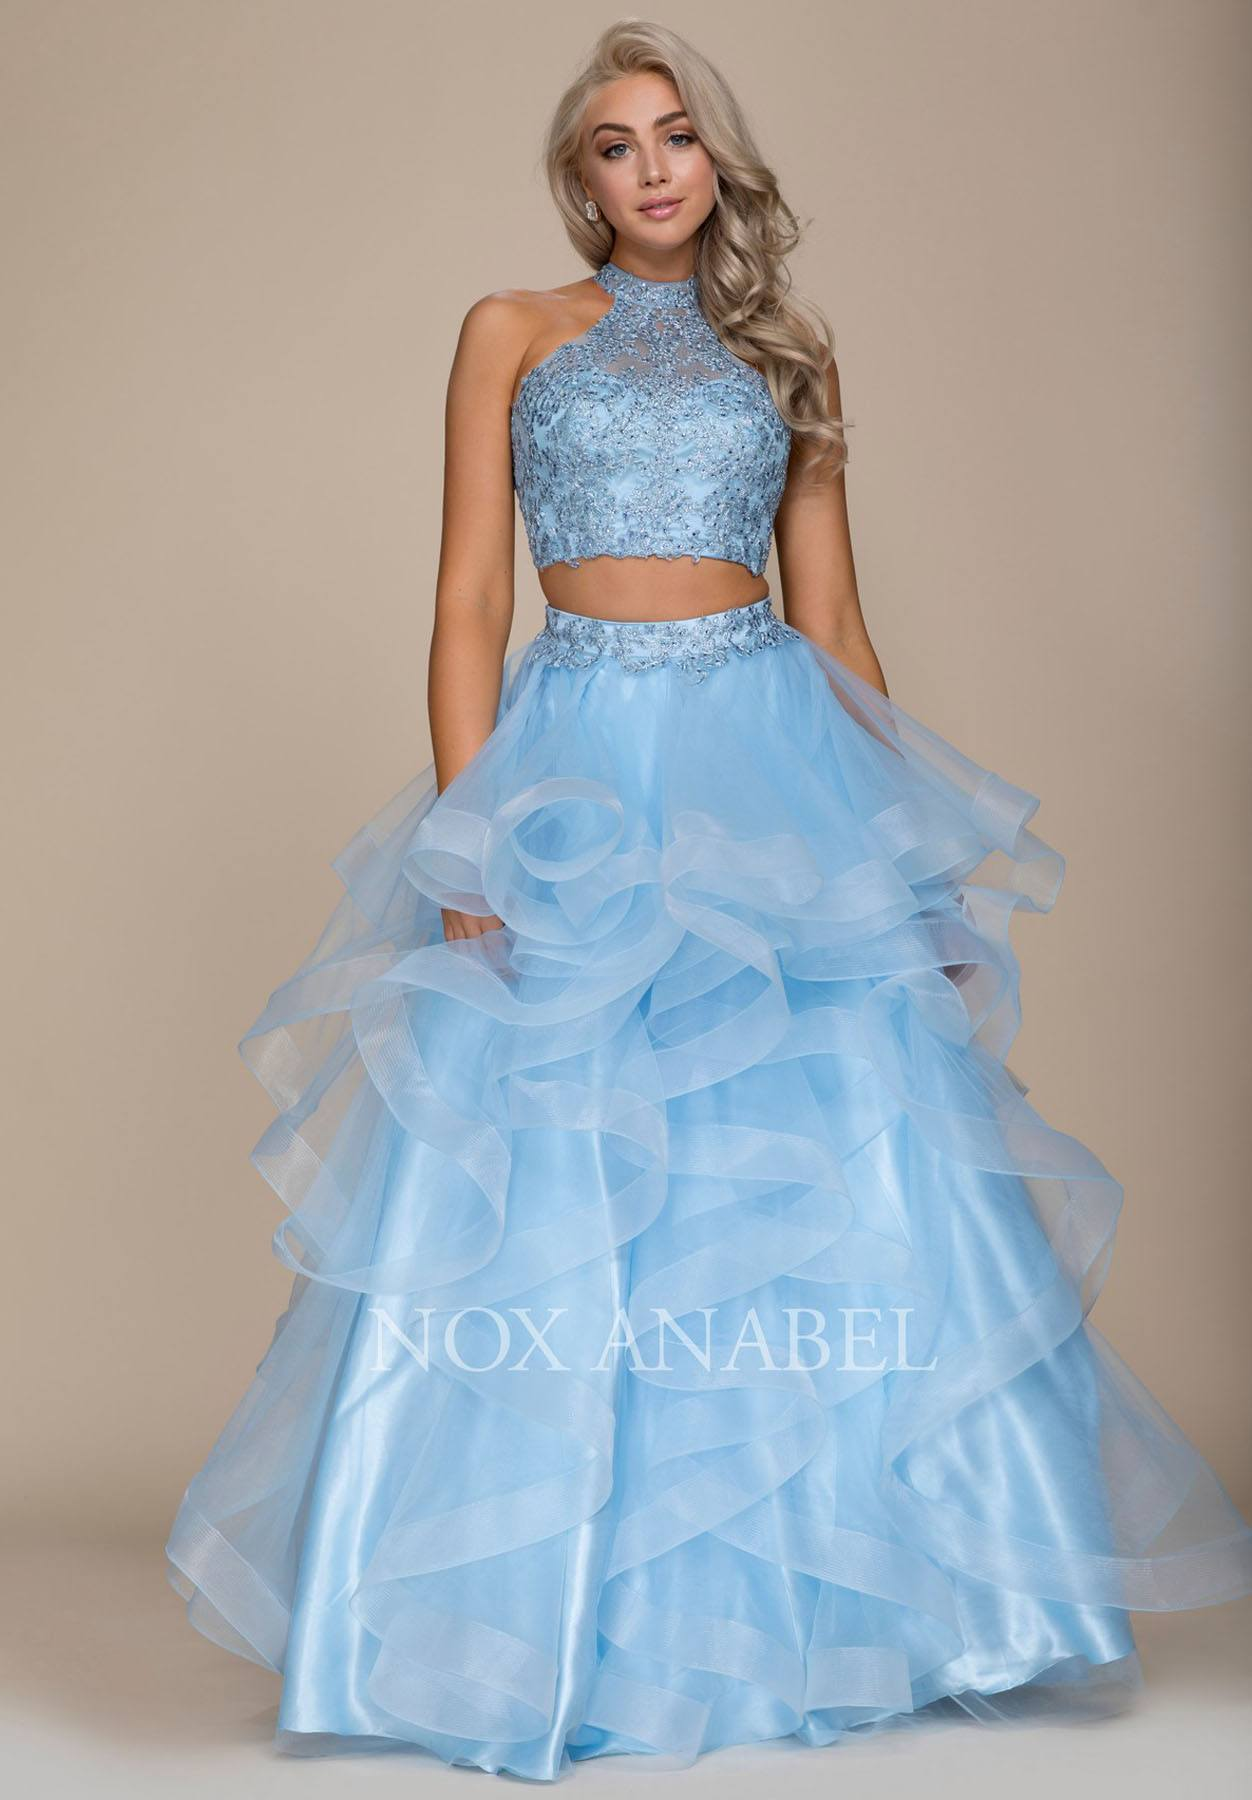 Nox Anabel A063 Two Piece Prom Gown Cut Out Back Ruffled Skirt Gold ...